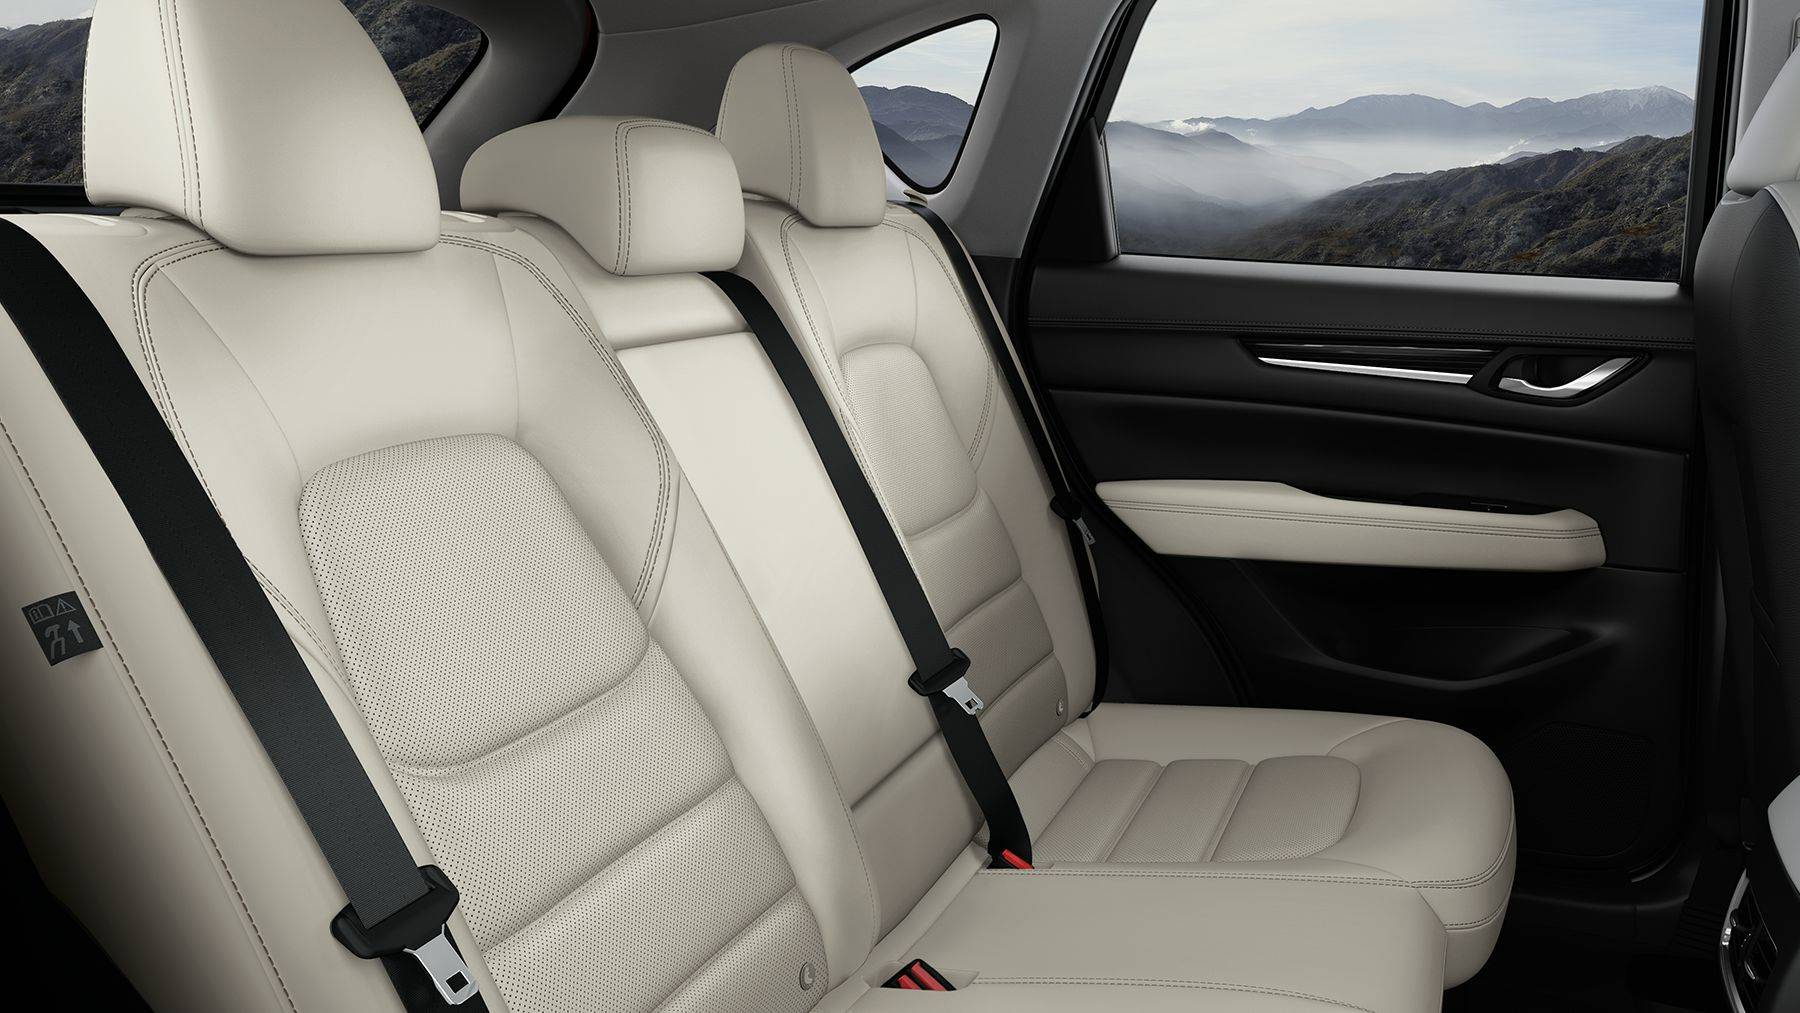 Enjoy Maximum Comfort During Any Drive in the 2018 Mazda CX-5!